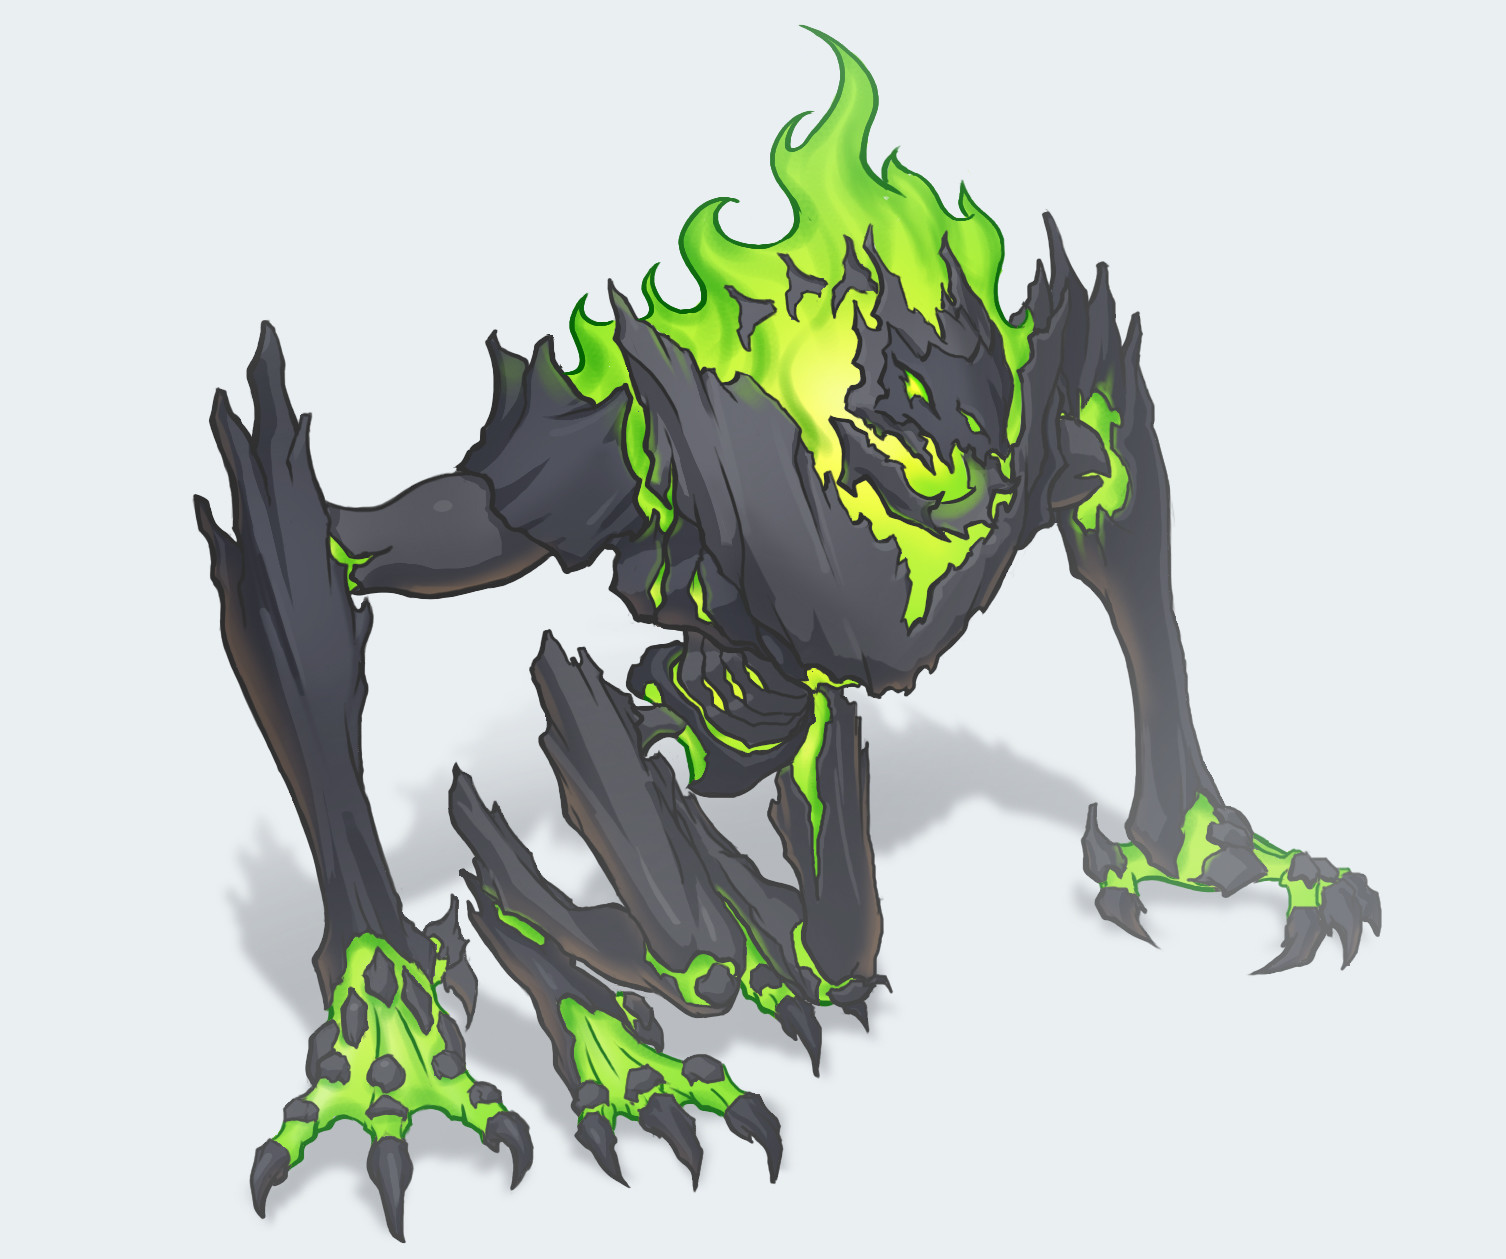 Cel shaded version of Radioactive city destroyer